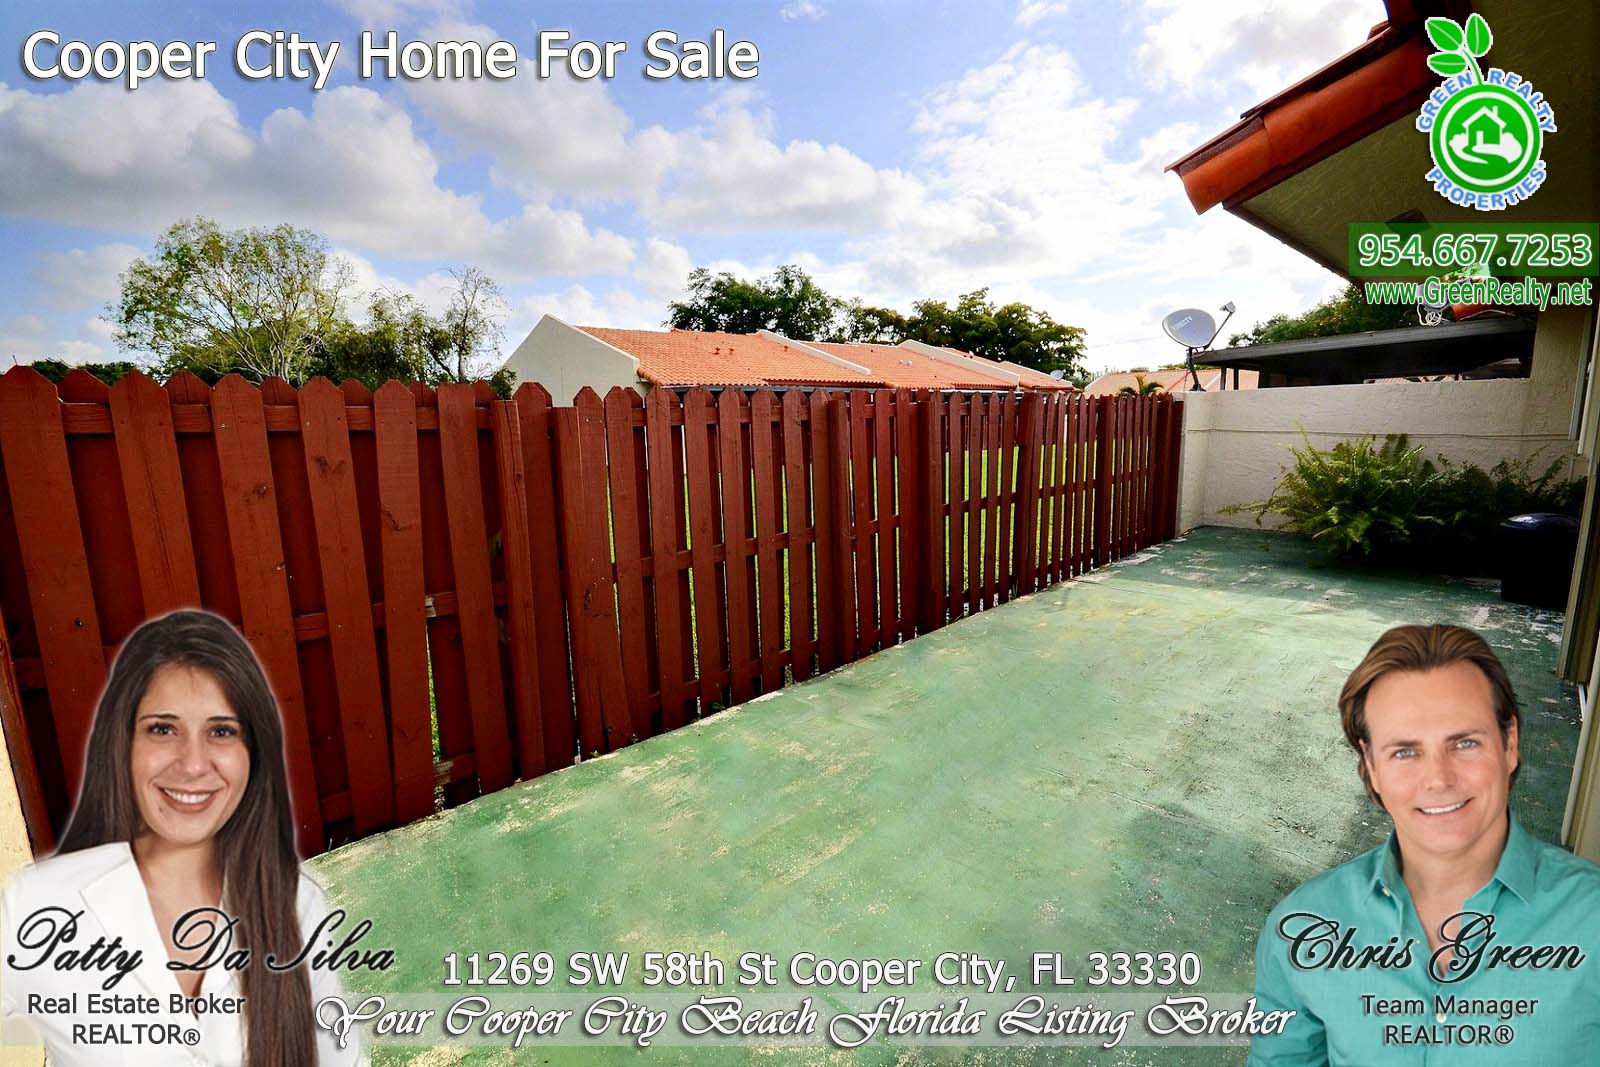 20 Cooper City Real Estate - Villas (16)